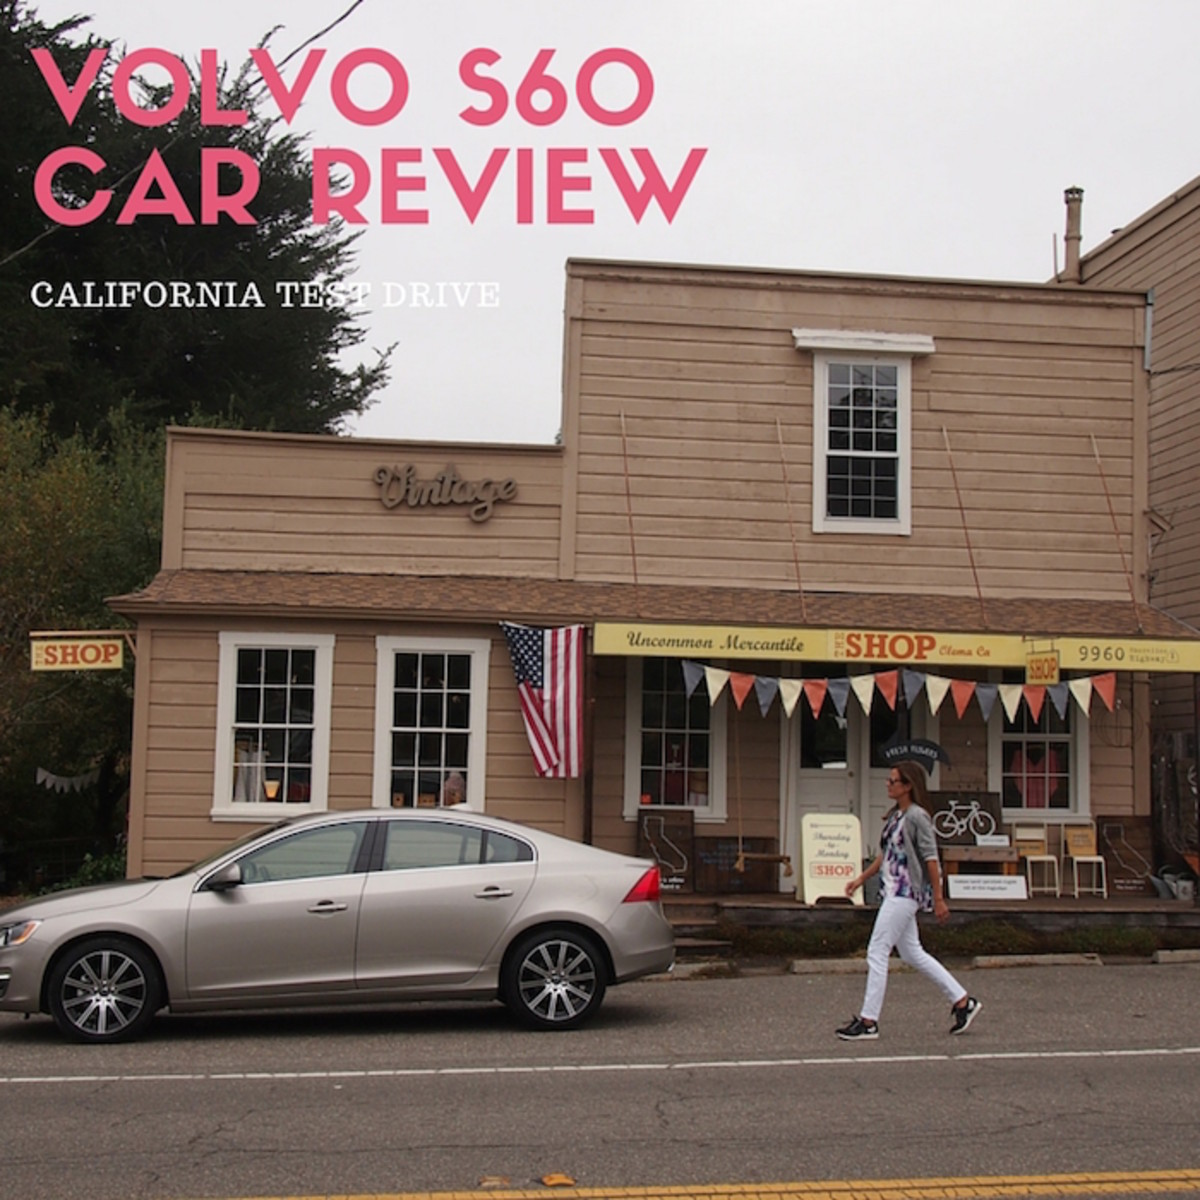 Volvo s60 test drive